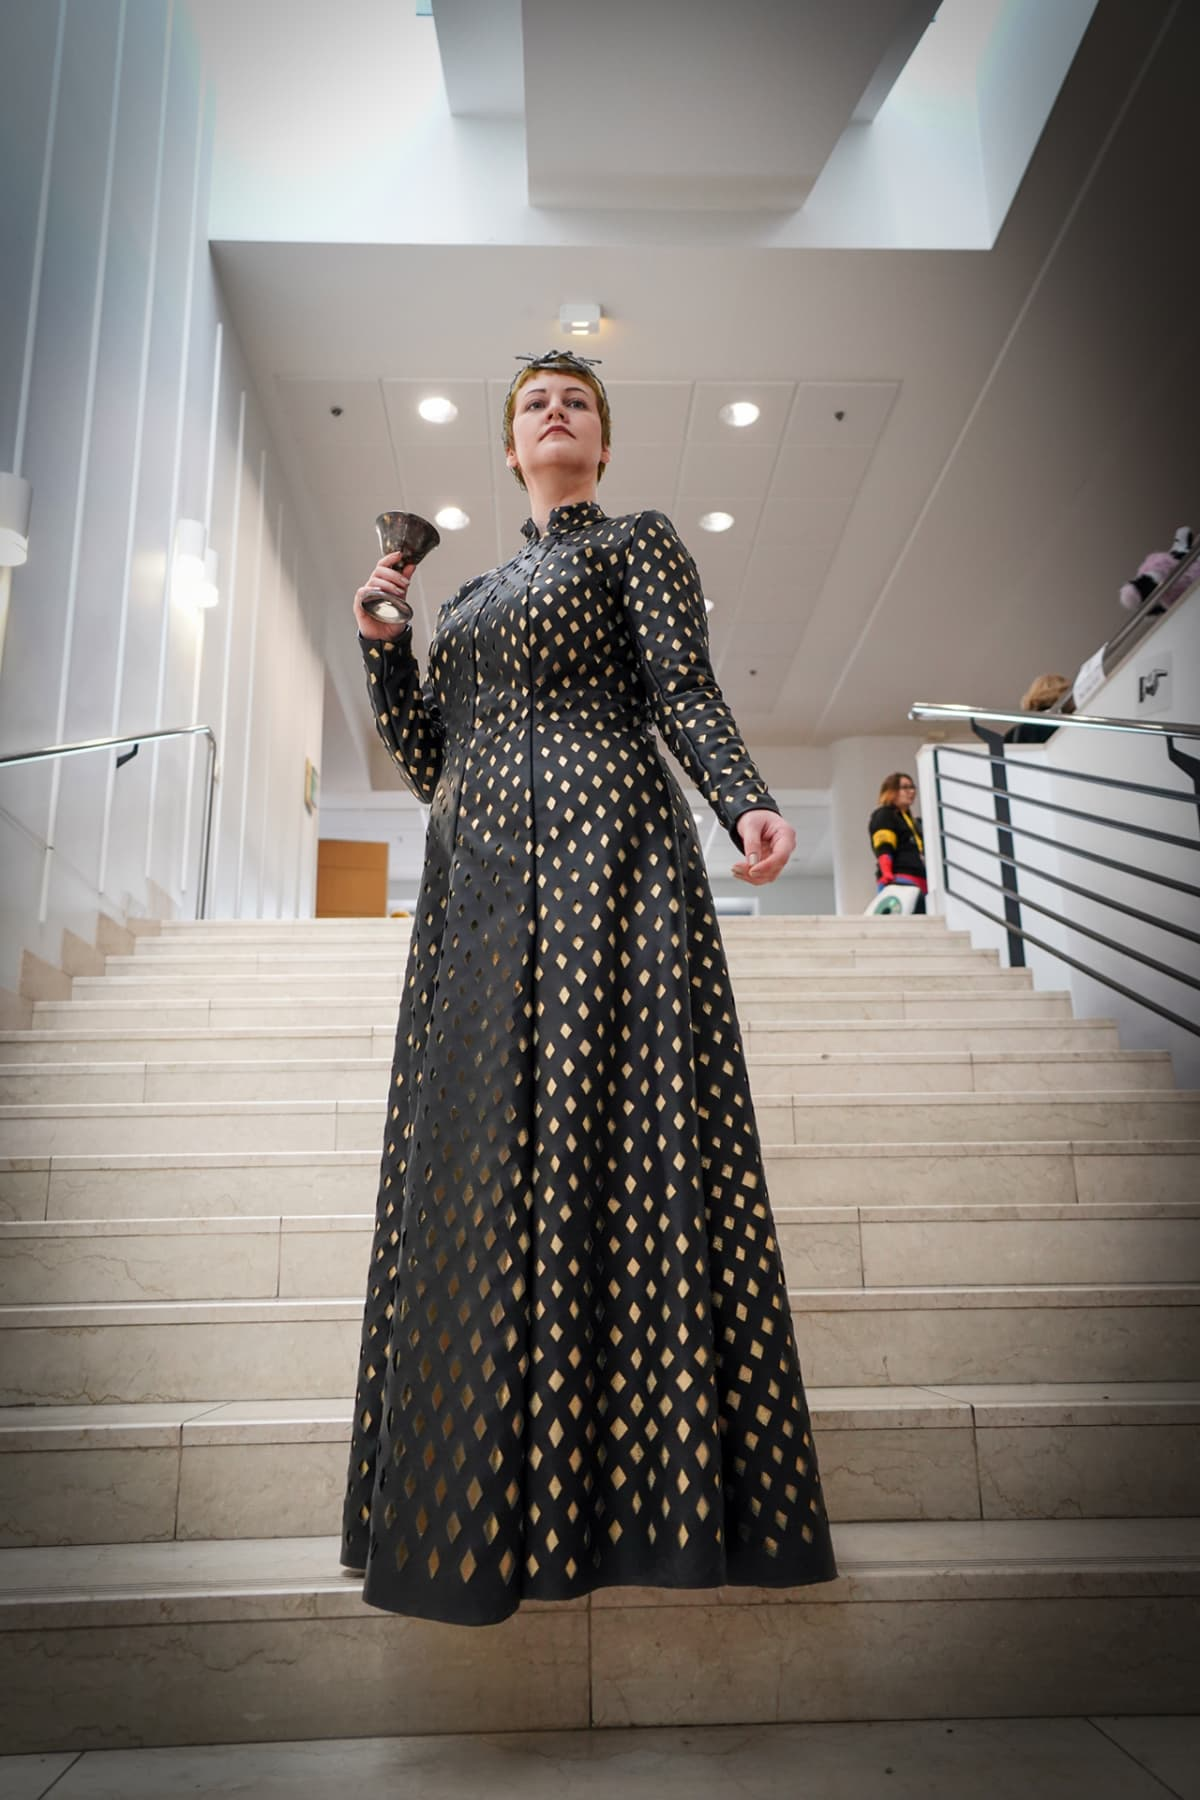 Popcult, Game of Thrones, Cersei Lannister, cosplay